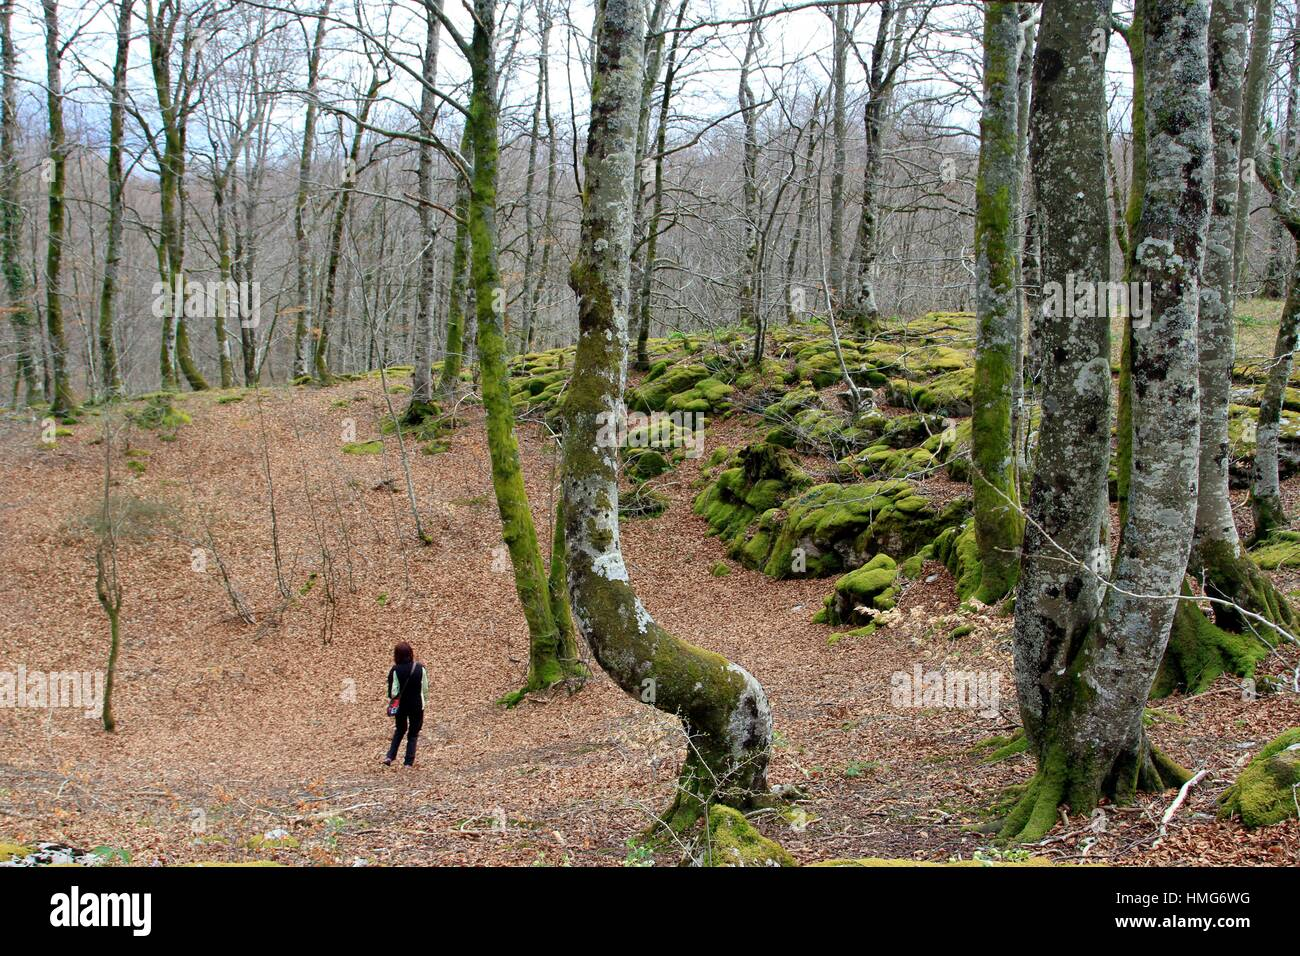 diverse kind of beech trees in the forest (Santiago). - Stock Image